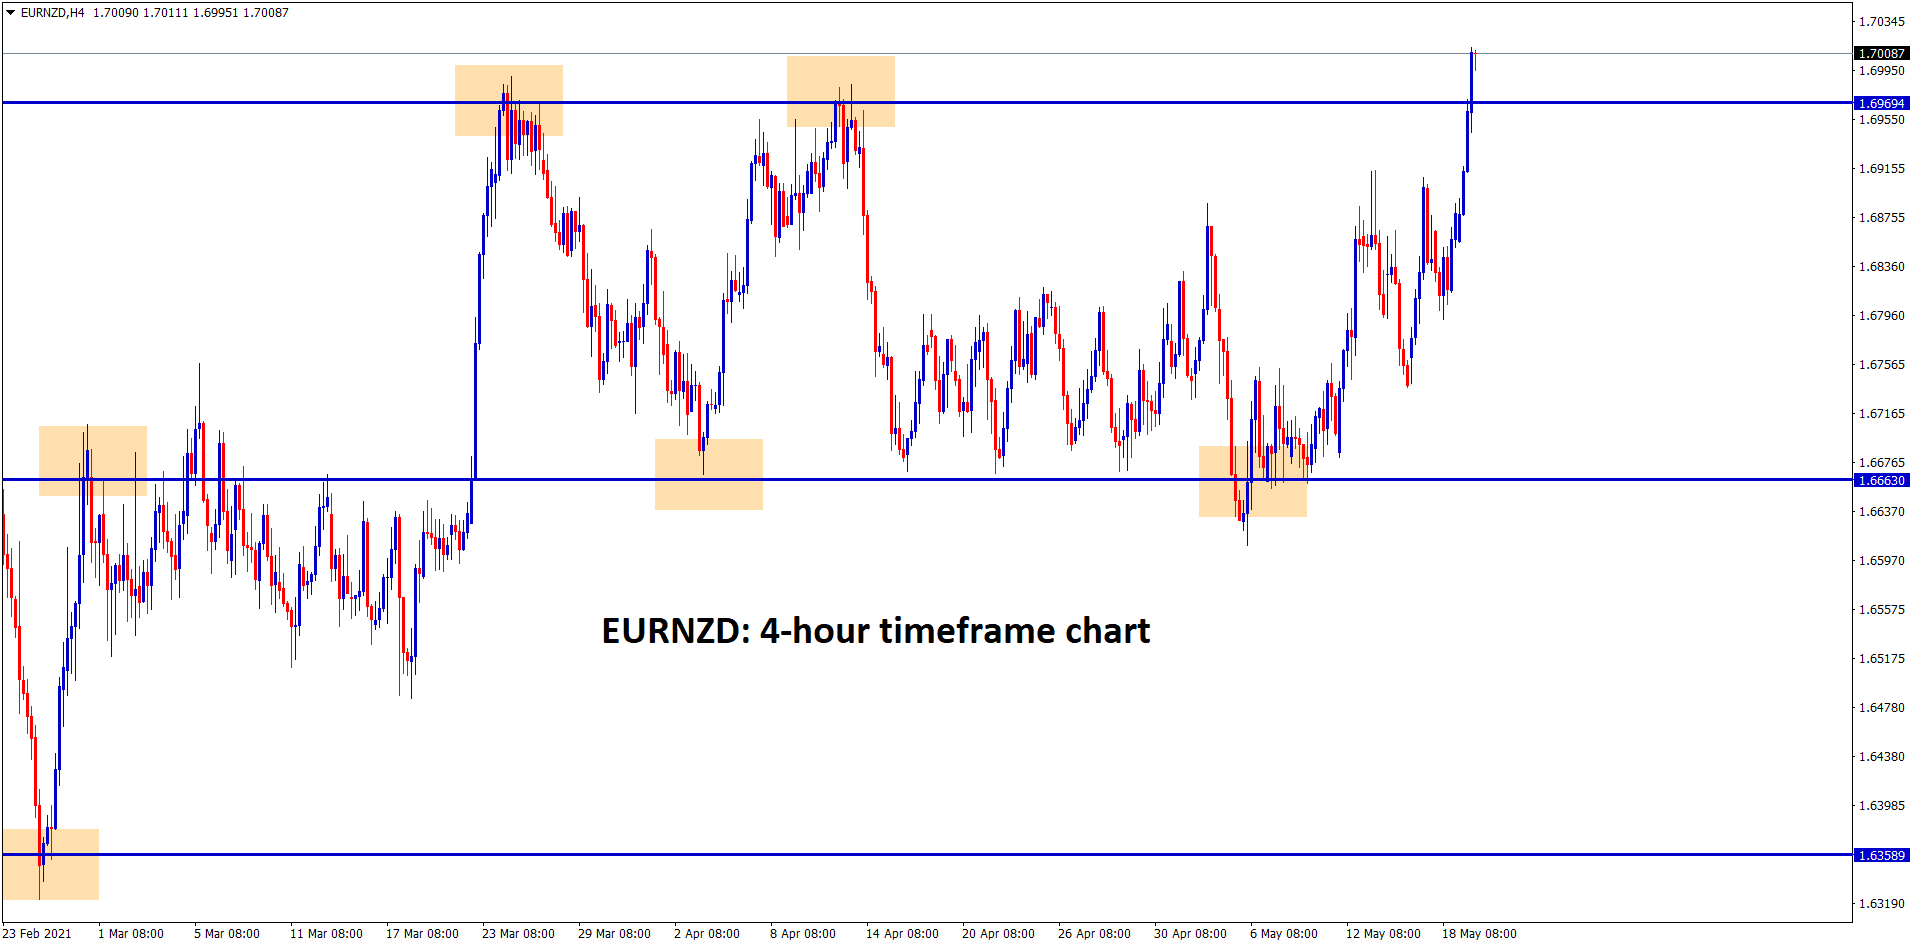 EURNZD at the top resistance zone in the 4hr chart